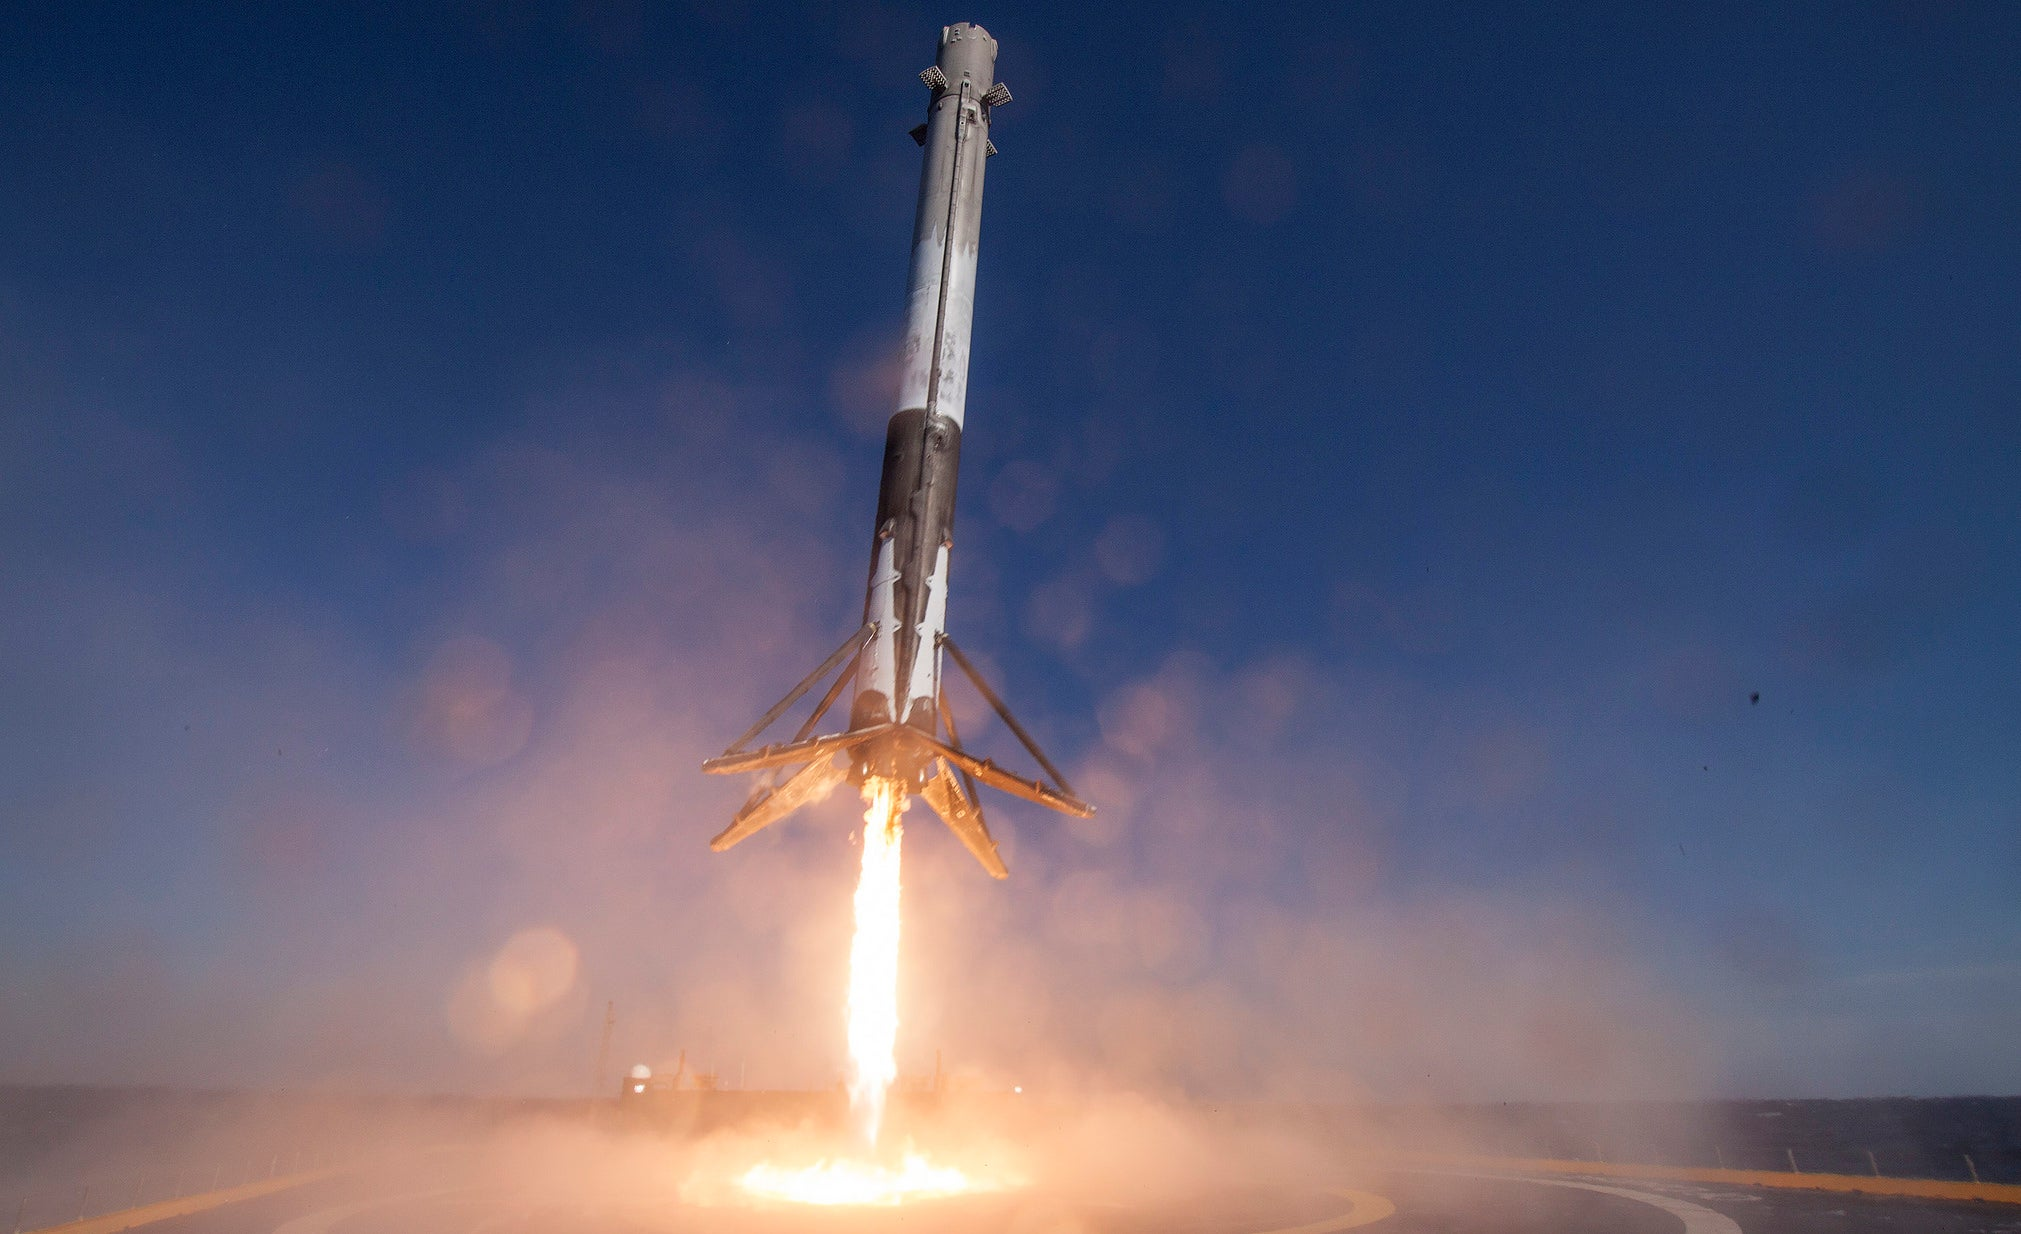 elon-musk ocean-barge-landings reusable-rockets rocket-launches rockets space spacex video